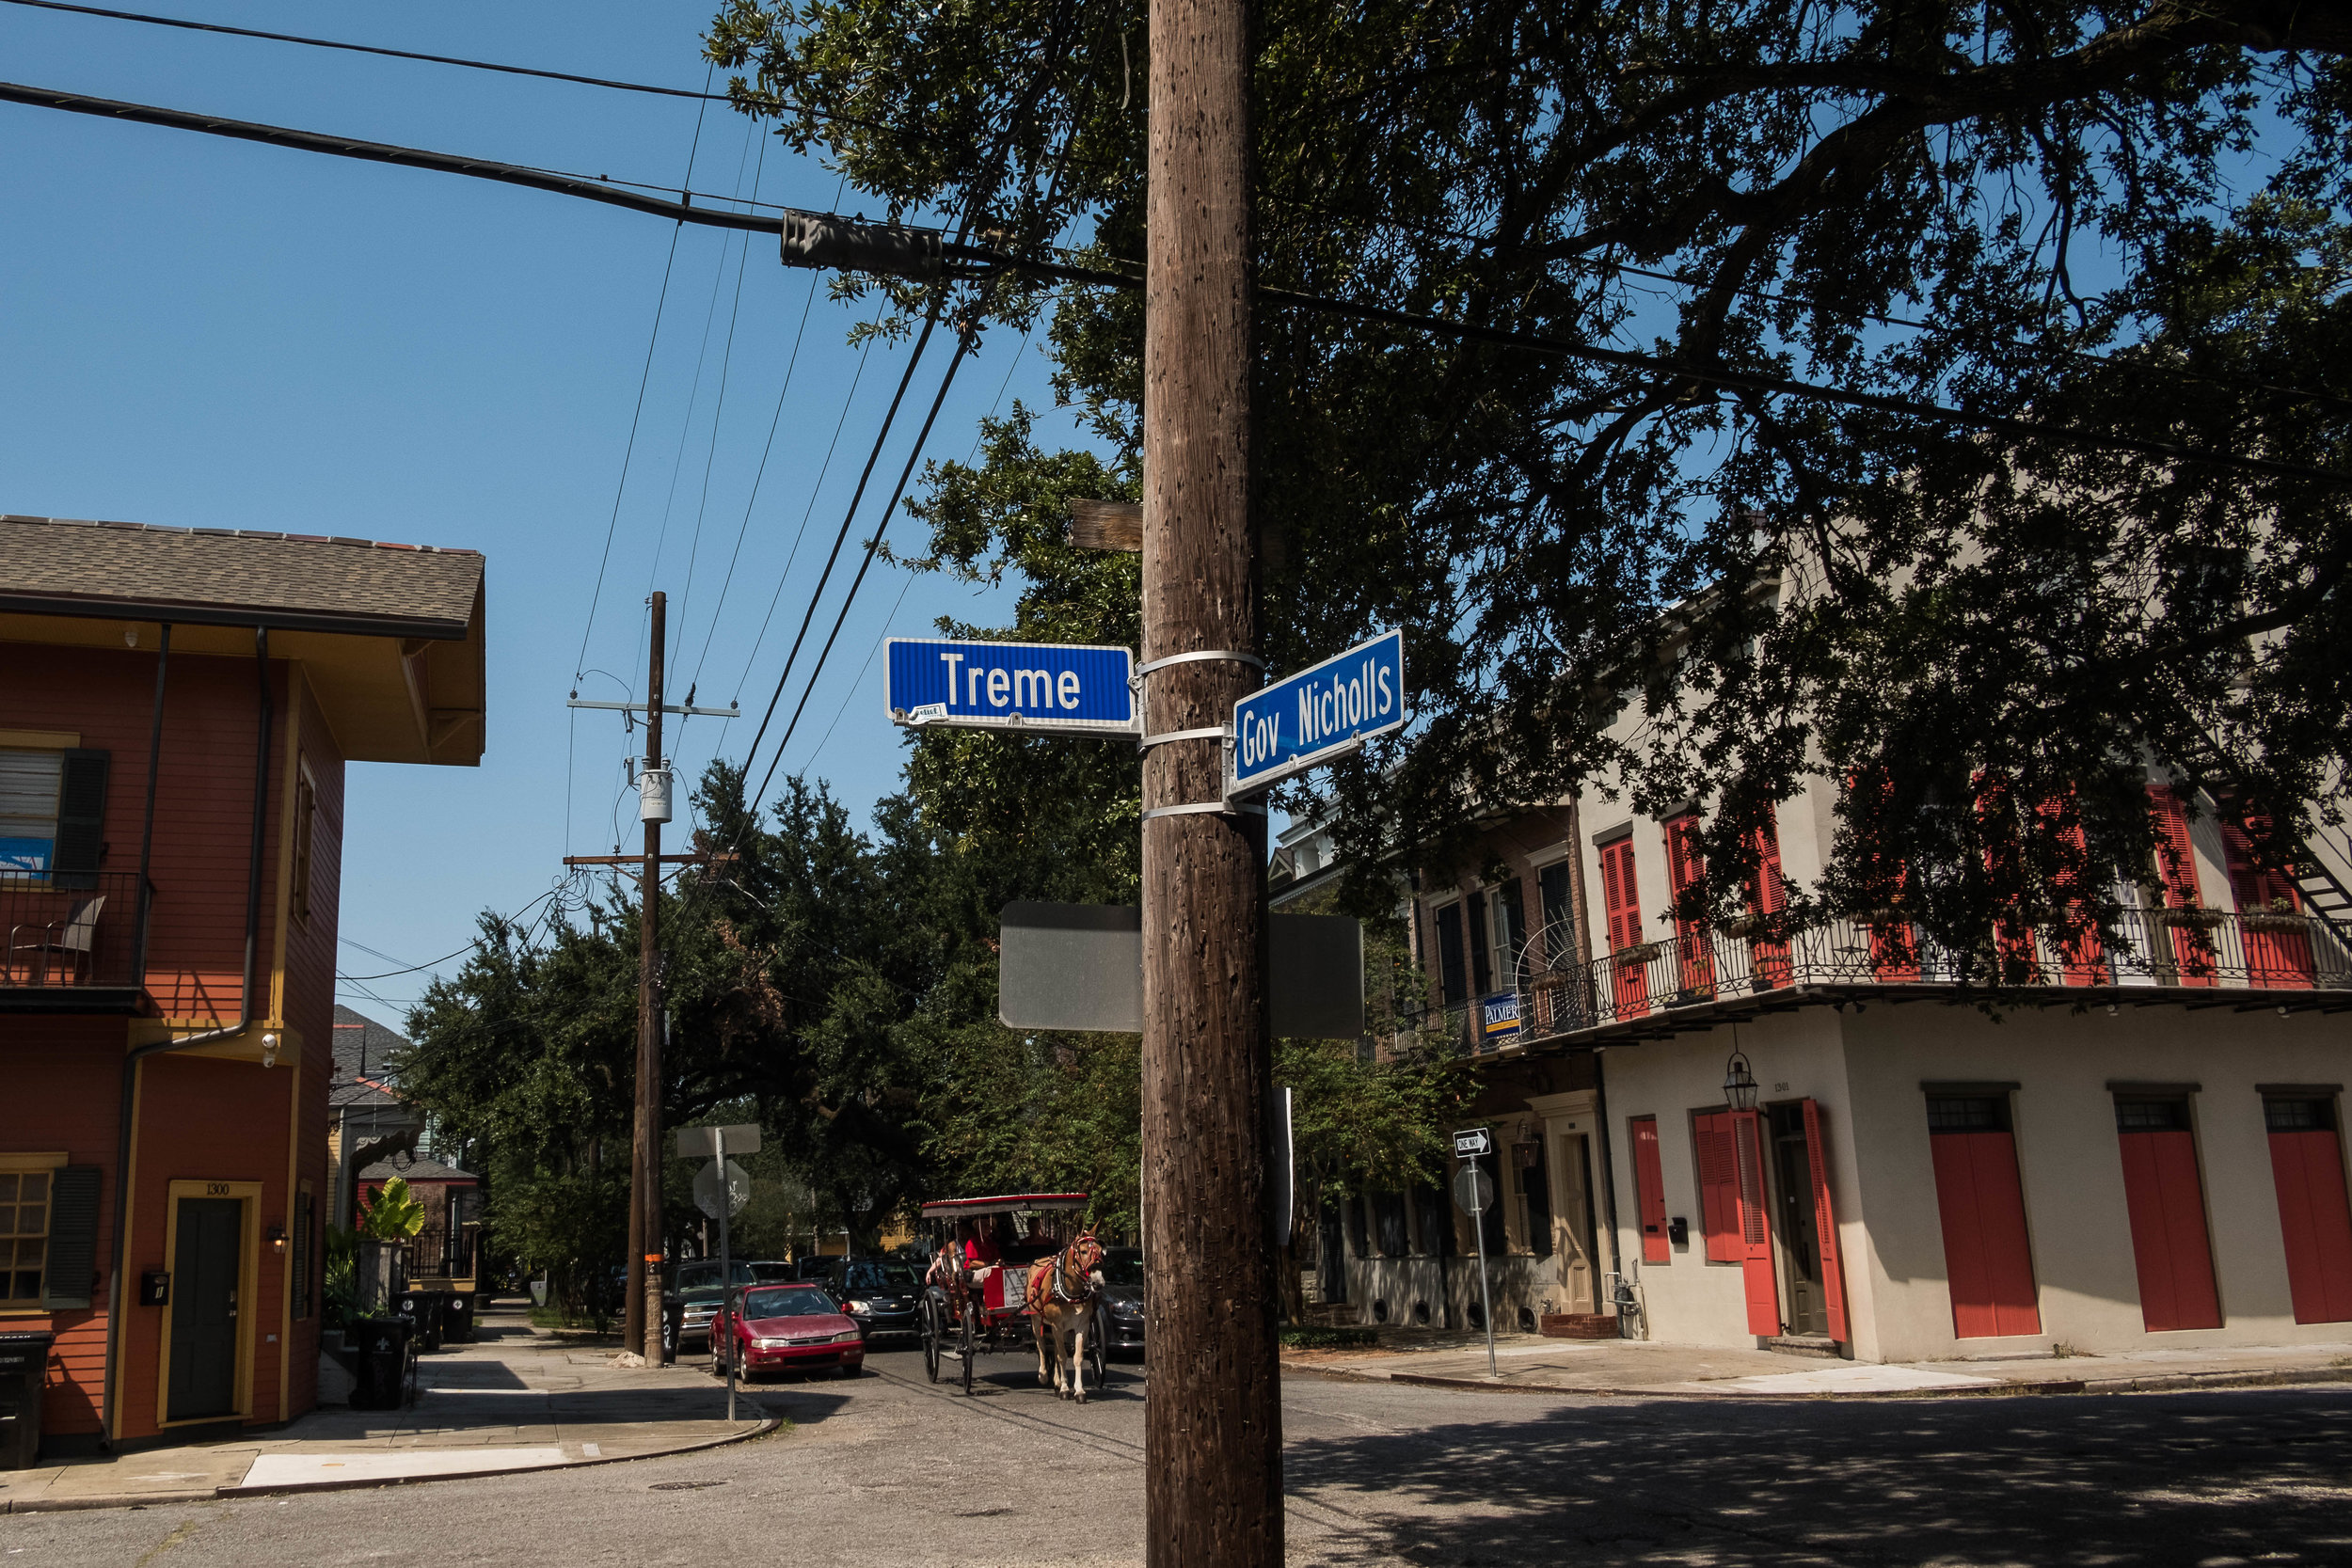 We were a day early for the Treme Fest (whoops) but we can say we stood on the street where Jazz was born.